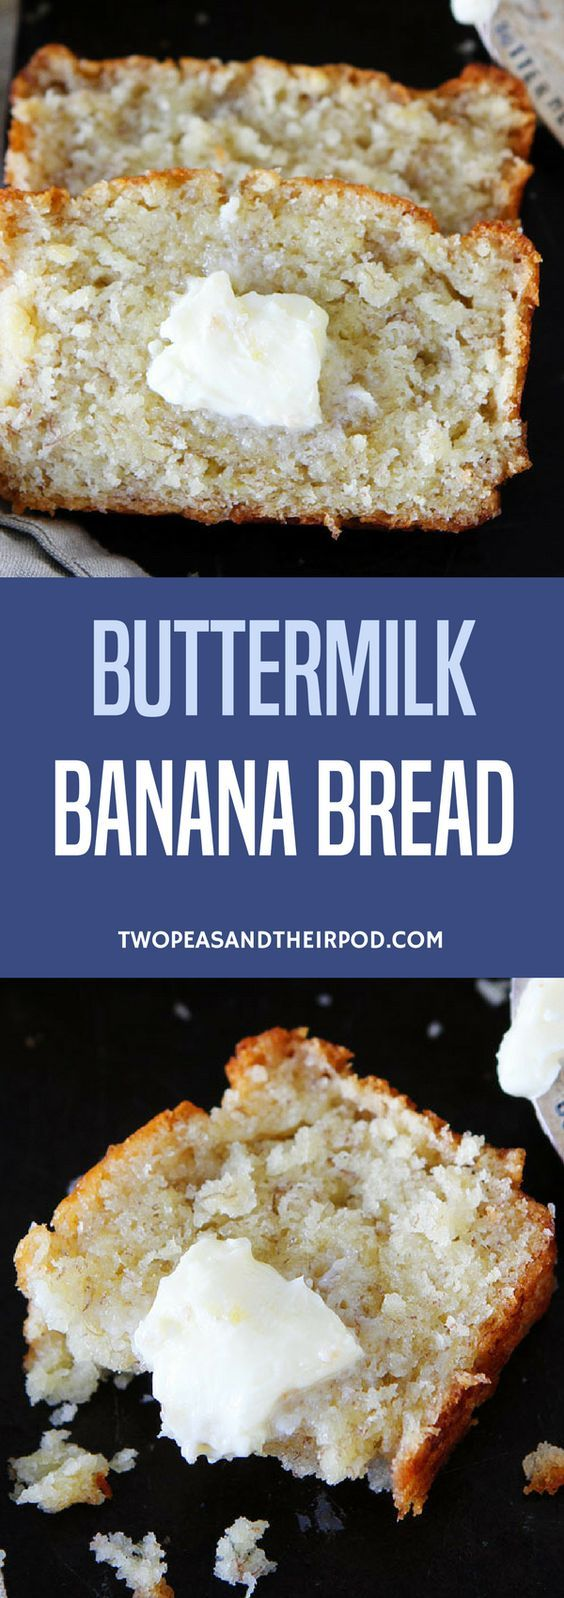 This Easy Buttermilk Banana Bread Recipe Always Gets Rave Reviews! Some Say It Is The BEST Banana Bread Recipe Out There. If You Have Brown Bananas And Buttermilk To Use Up, Make This Banana Bread. You Won't Be Disappointed. #bananabread #bananas #bread #quickbread #baking